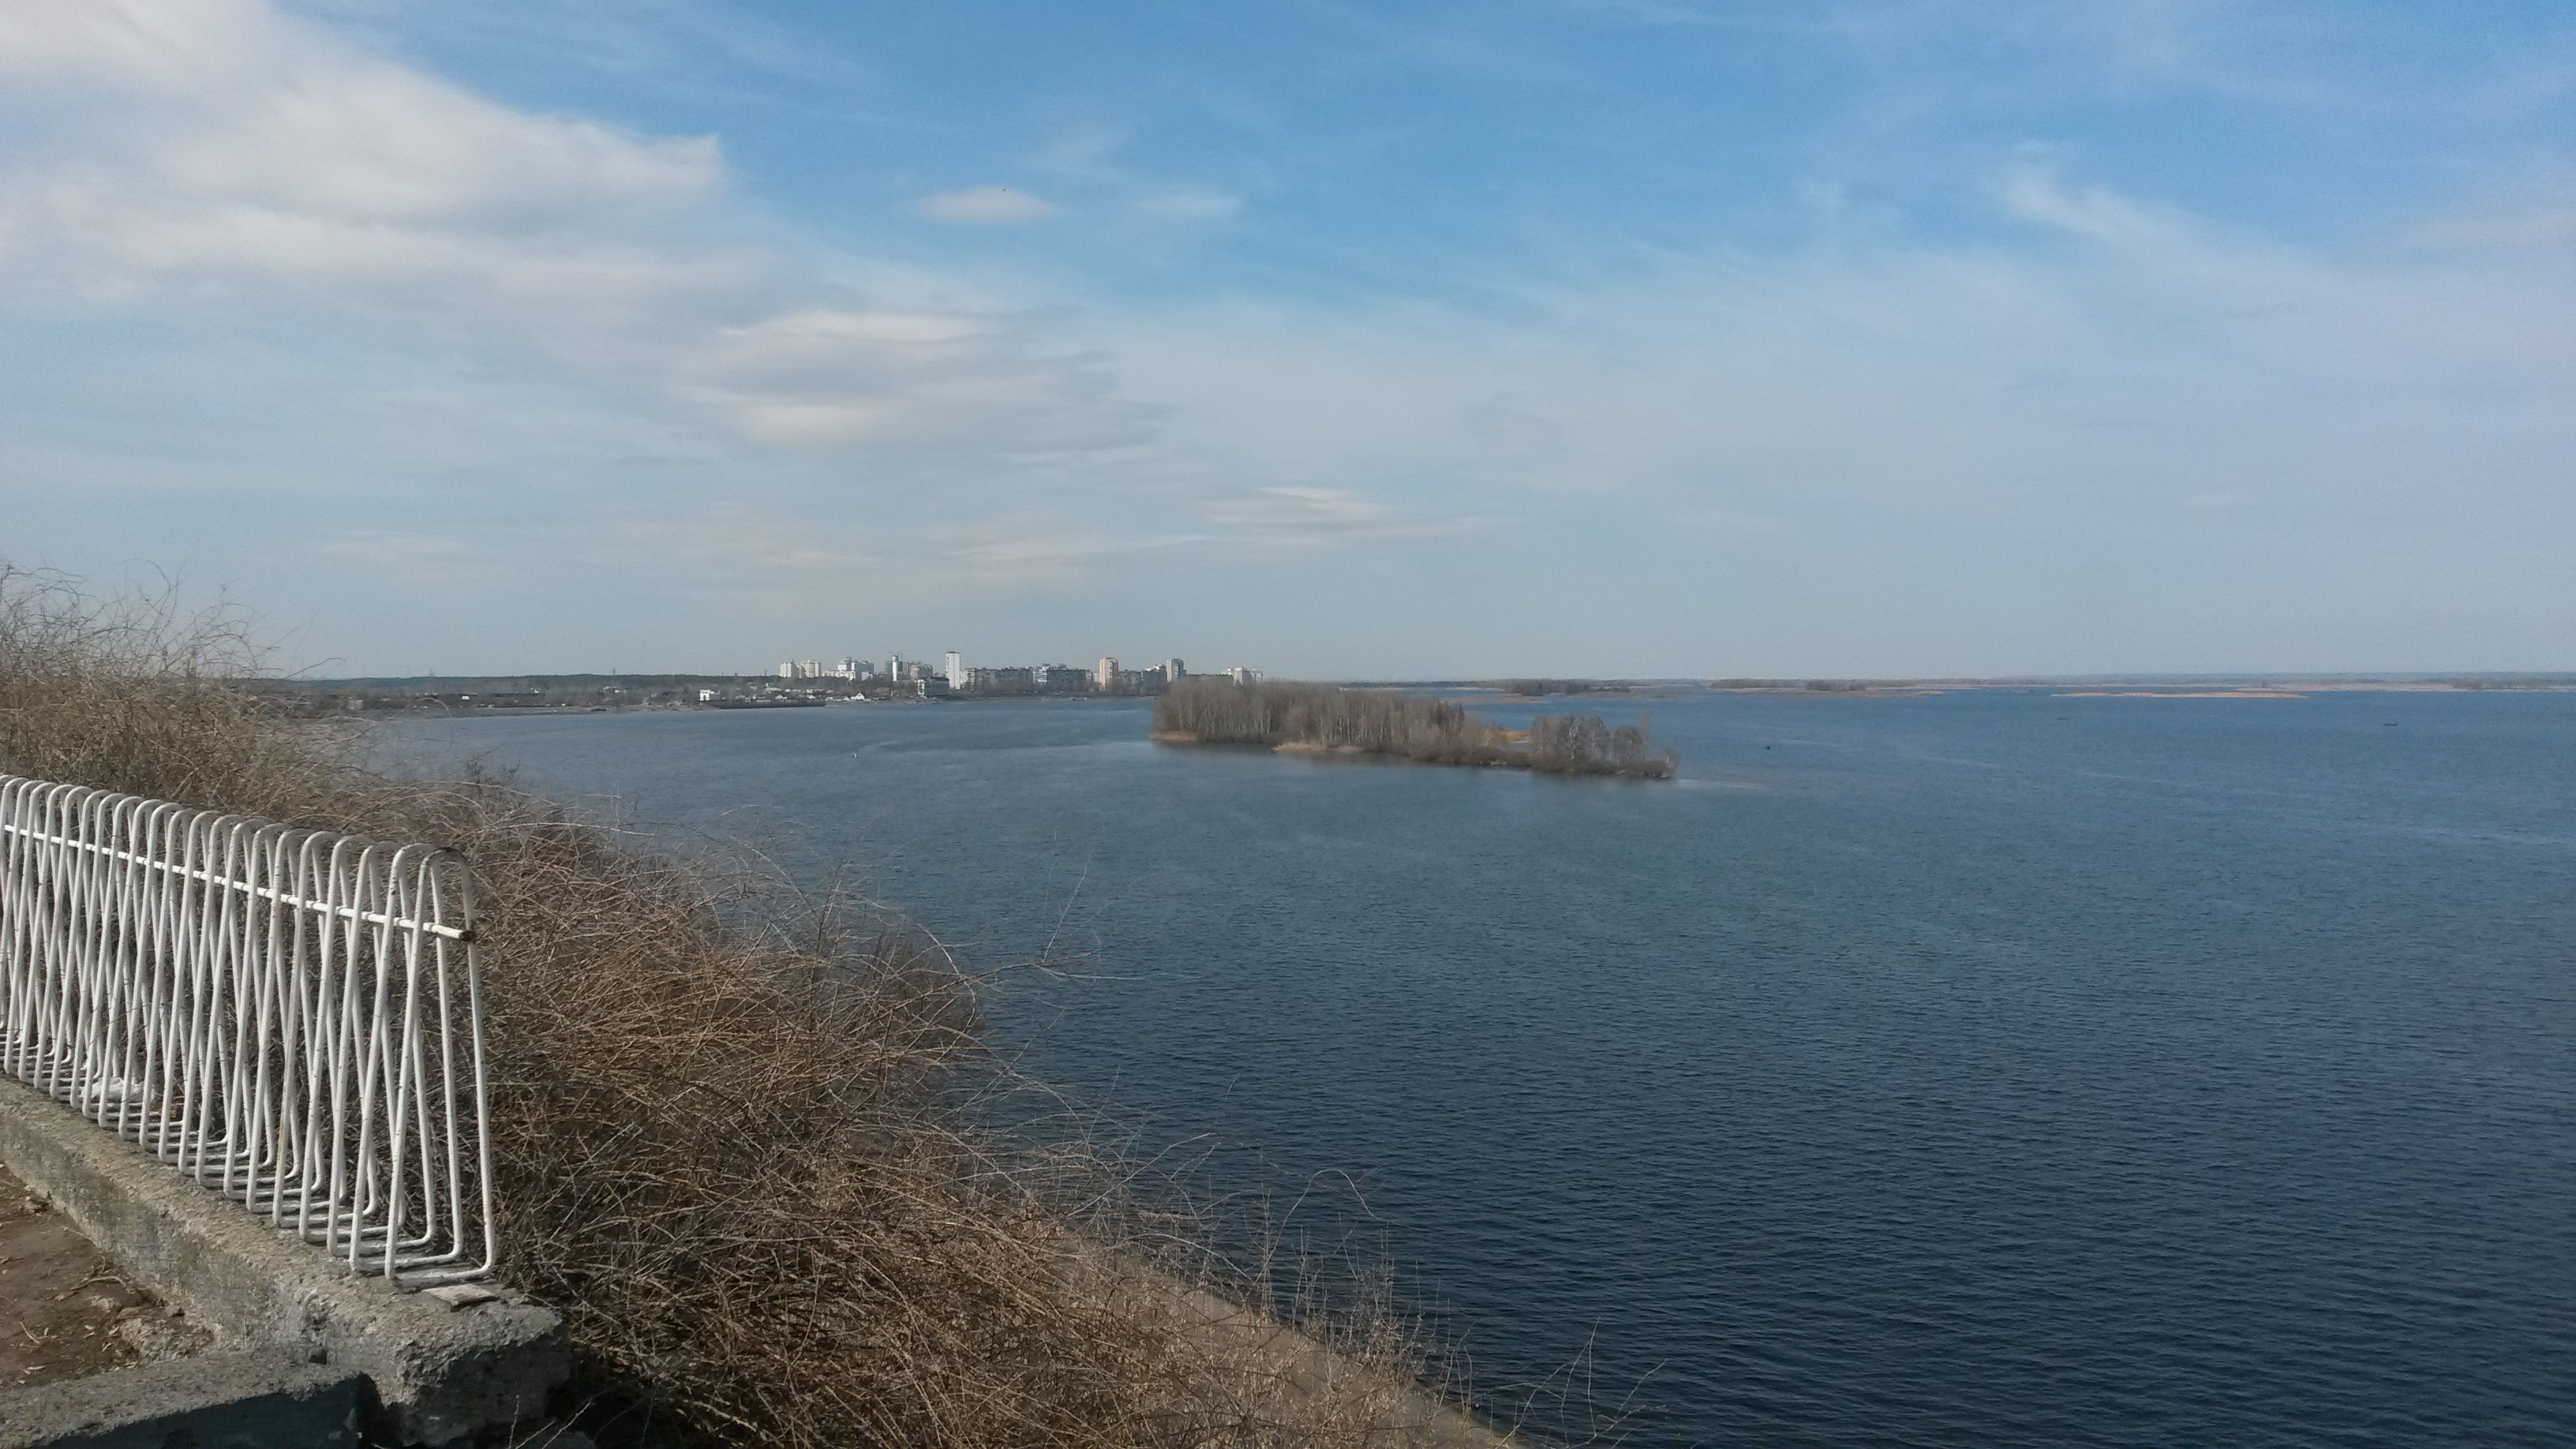 Dnieper river near site of Trypillia castle